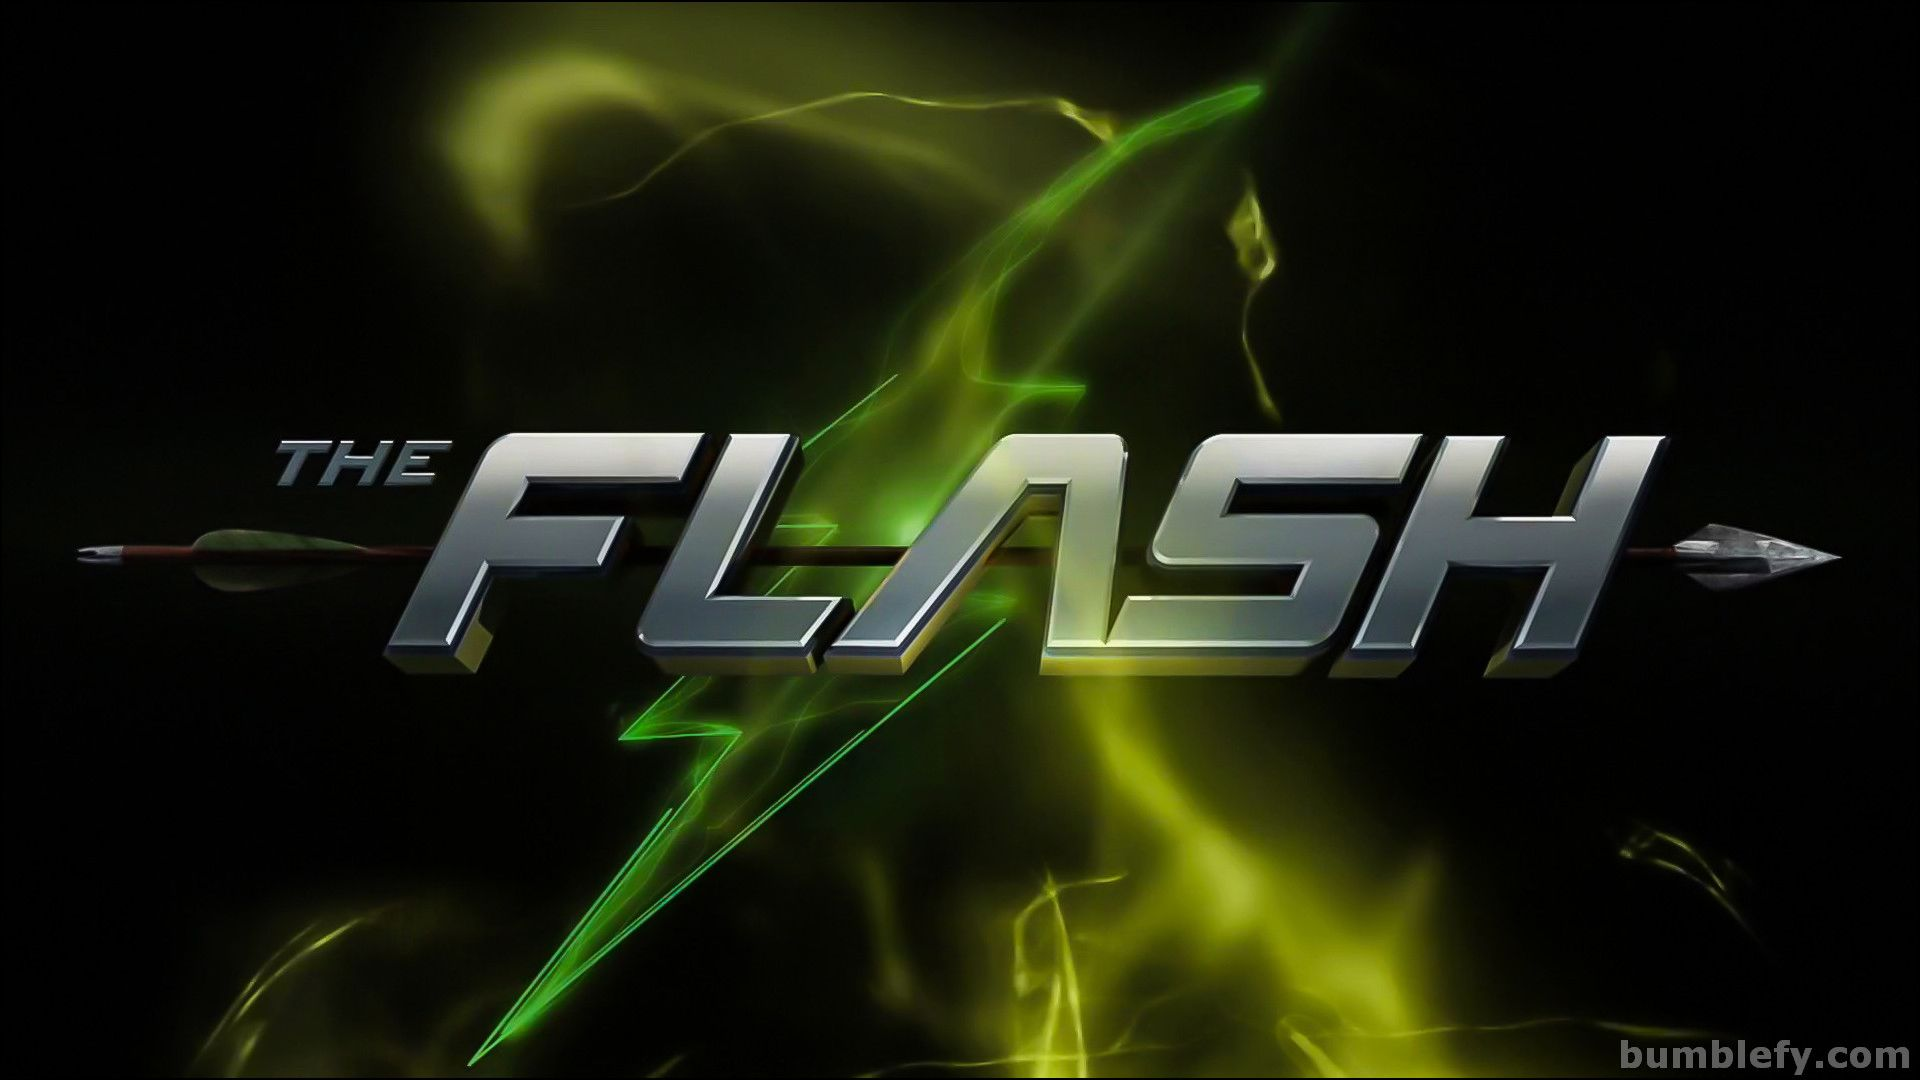 70 Best Free Arrow And Flash Phone Wallpapers Wallpaperaccess